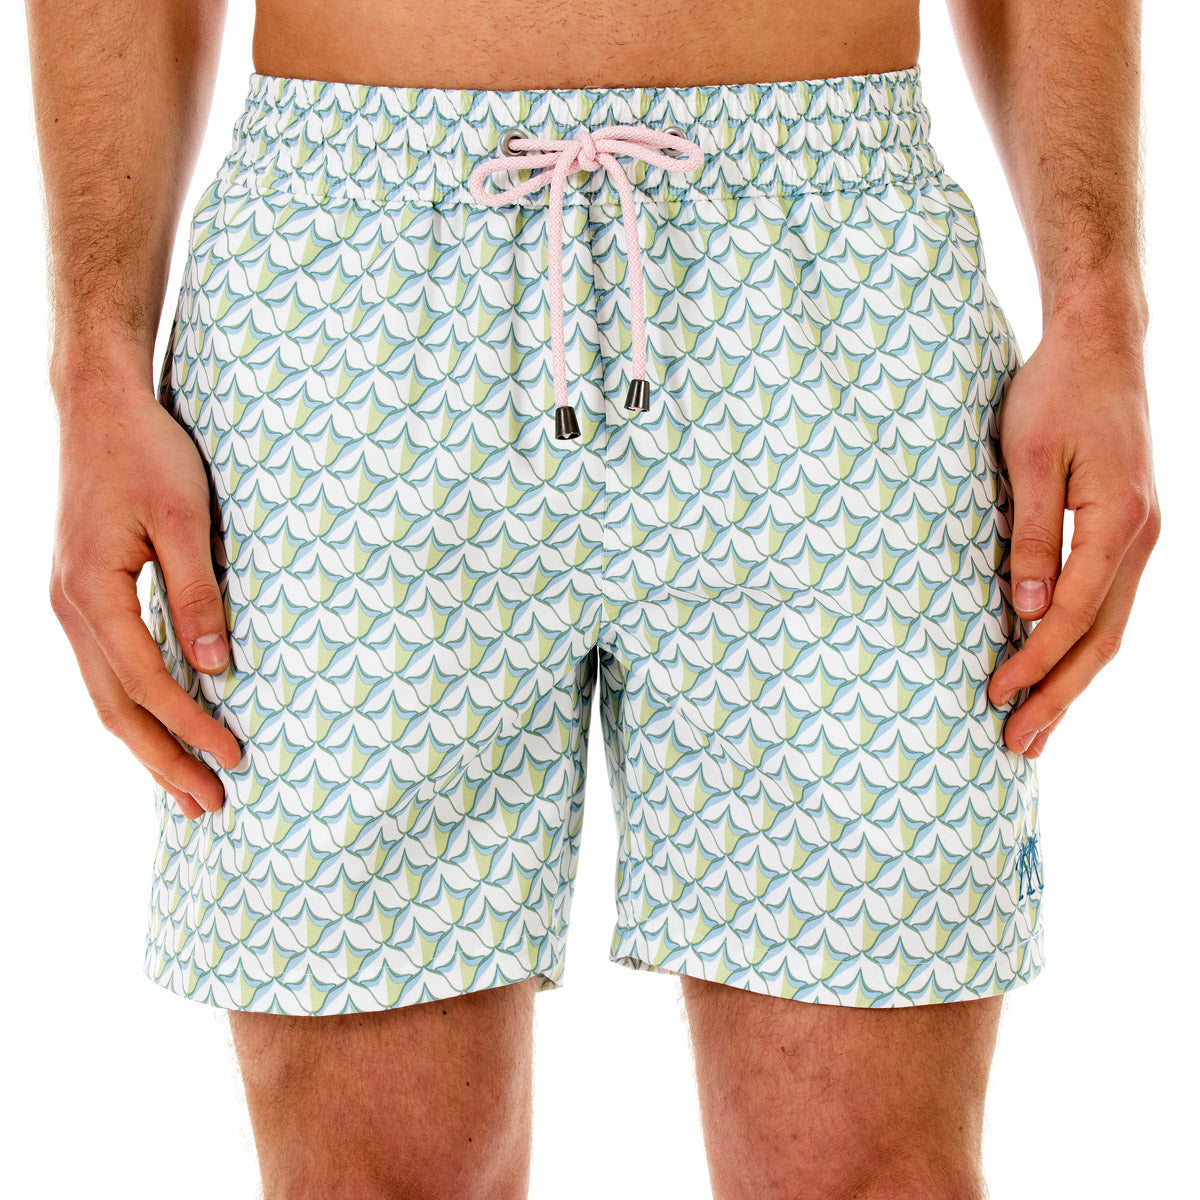 Mens swim trunks : PINEAPPLE PRICKLES - OLIVE front